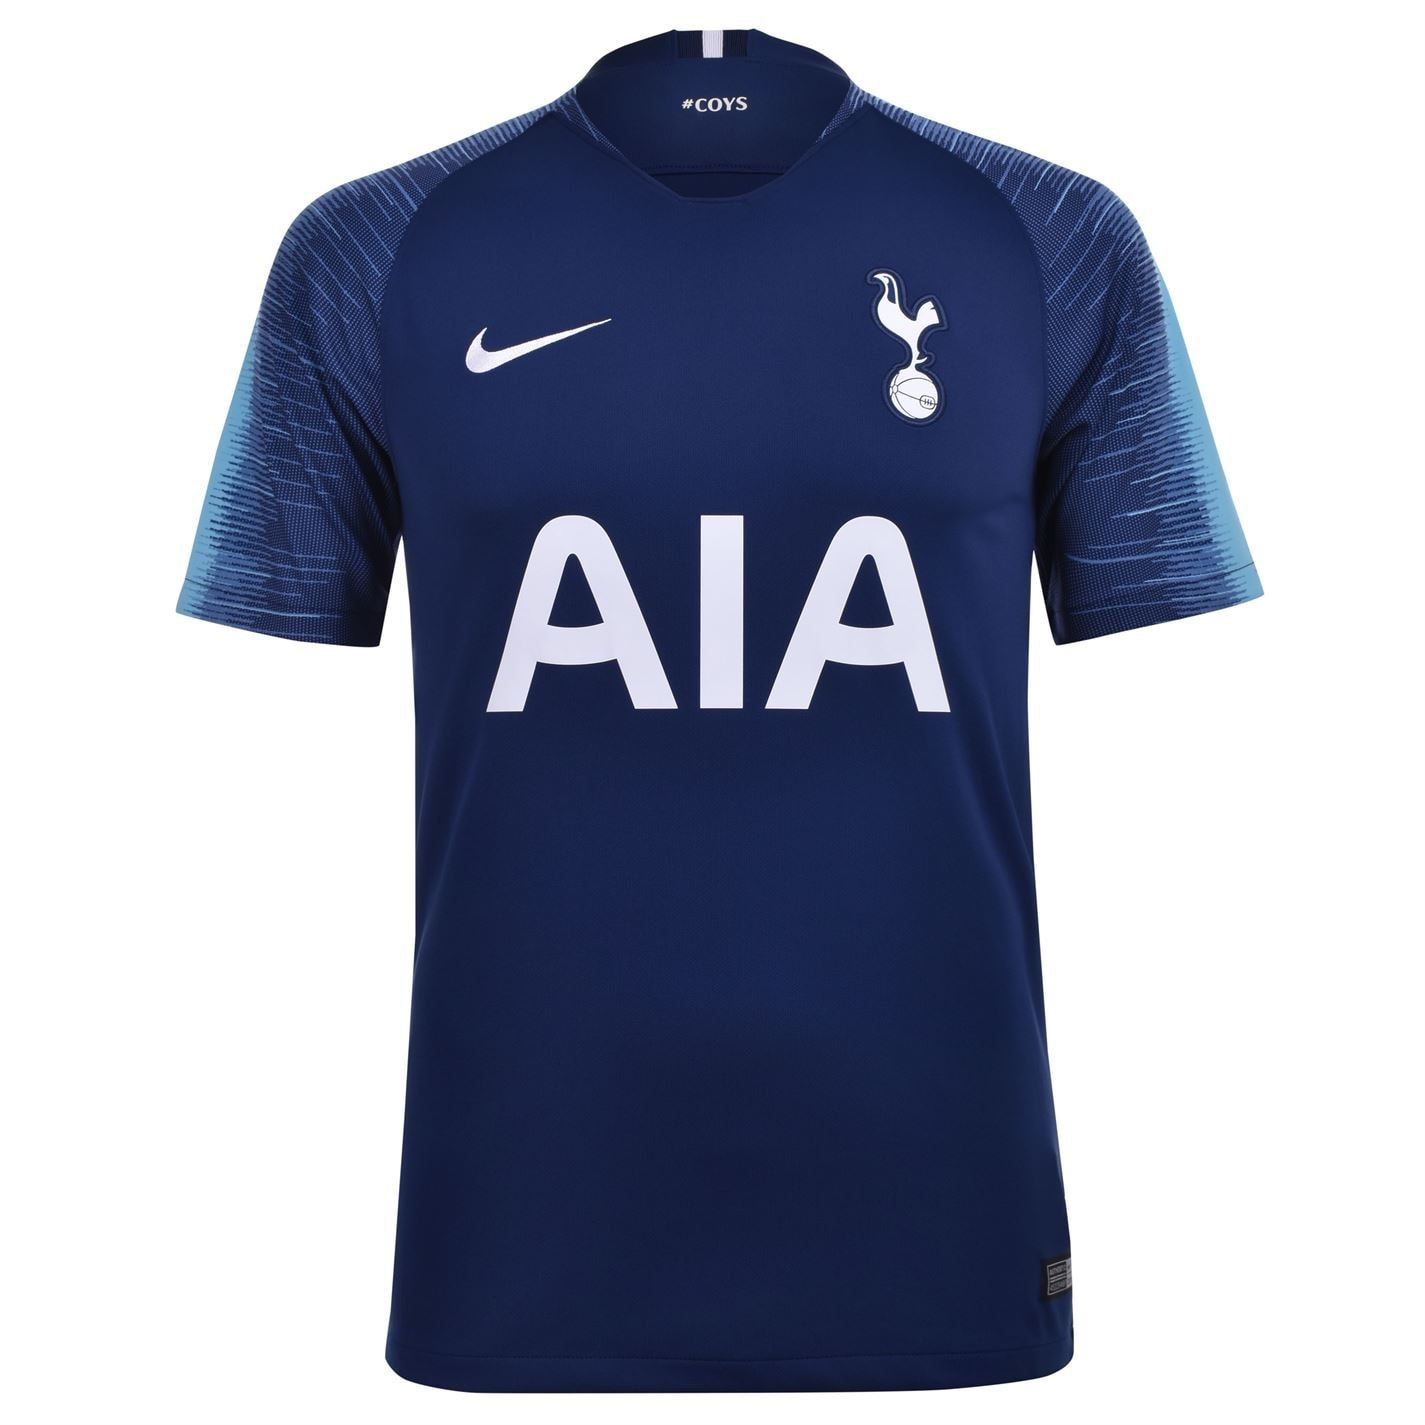 Nike Tottenham Hotspur Away Shirt Mens Blue Football Soccer Jersey Top Ebay